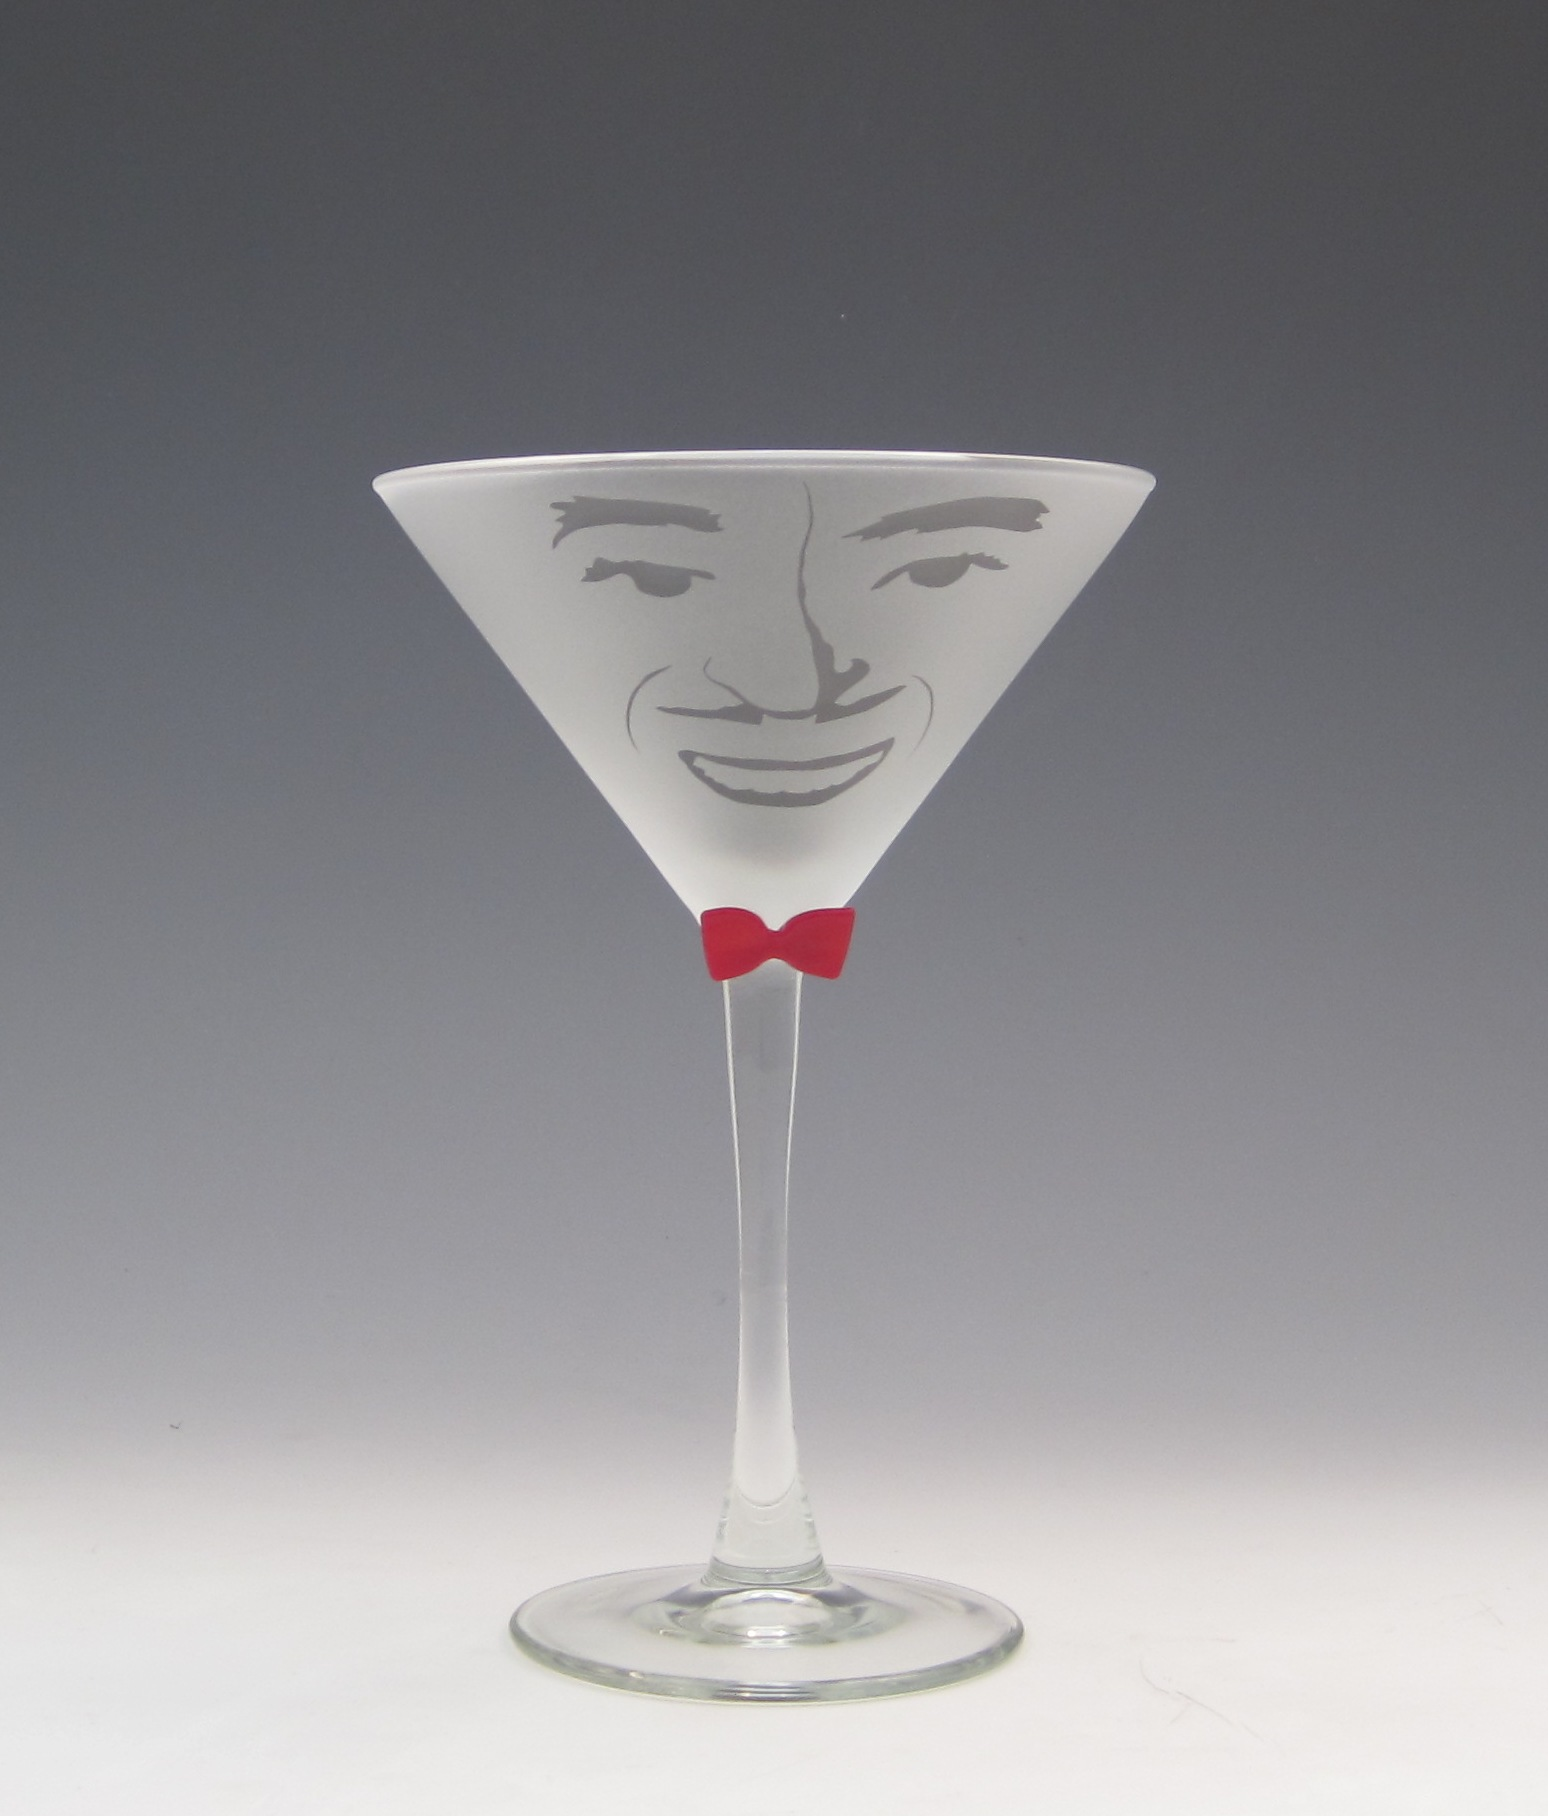 Ecommerce Website Orlando Martini.jpg